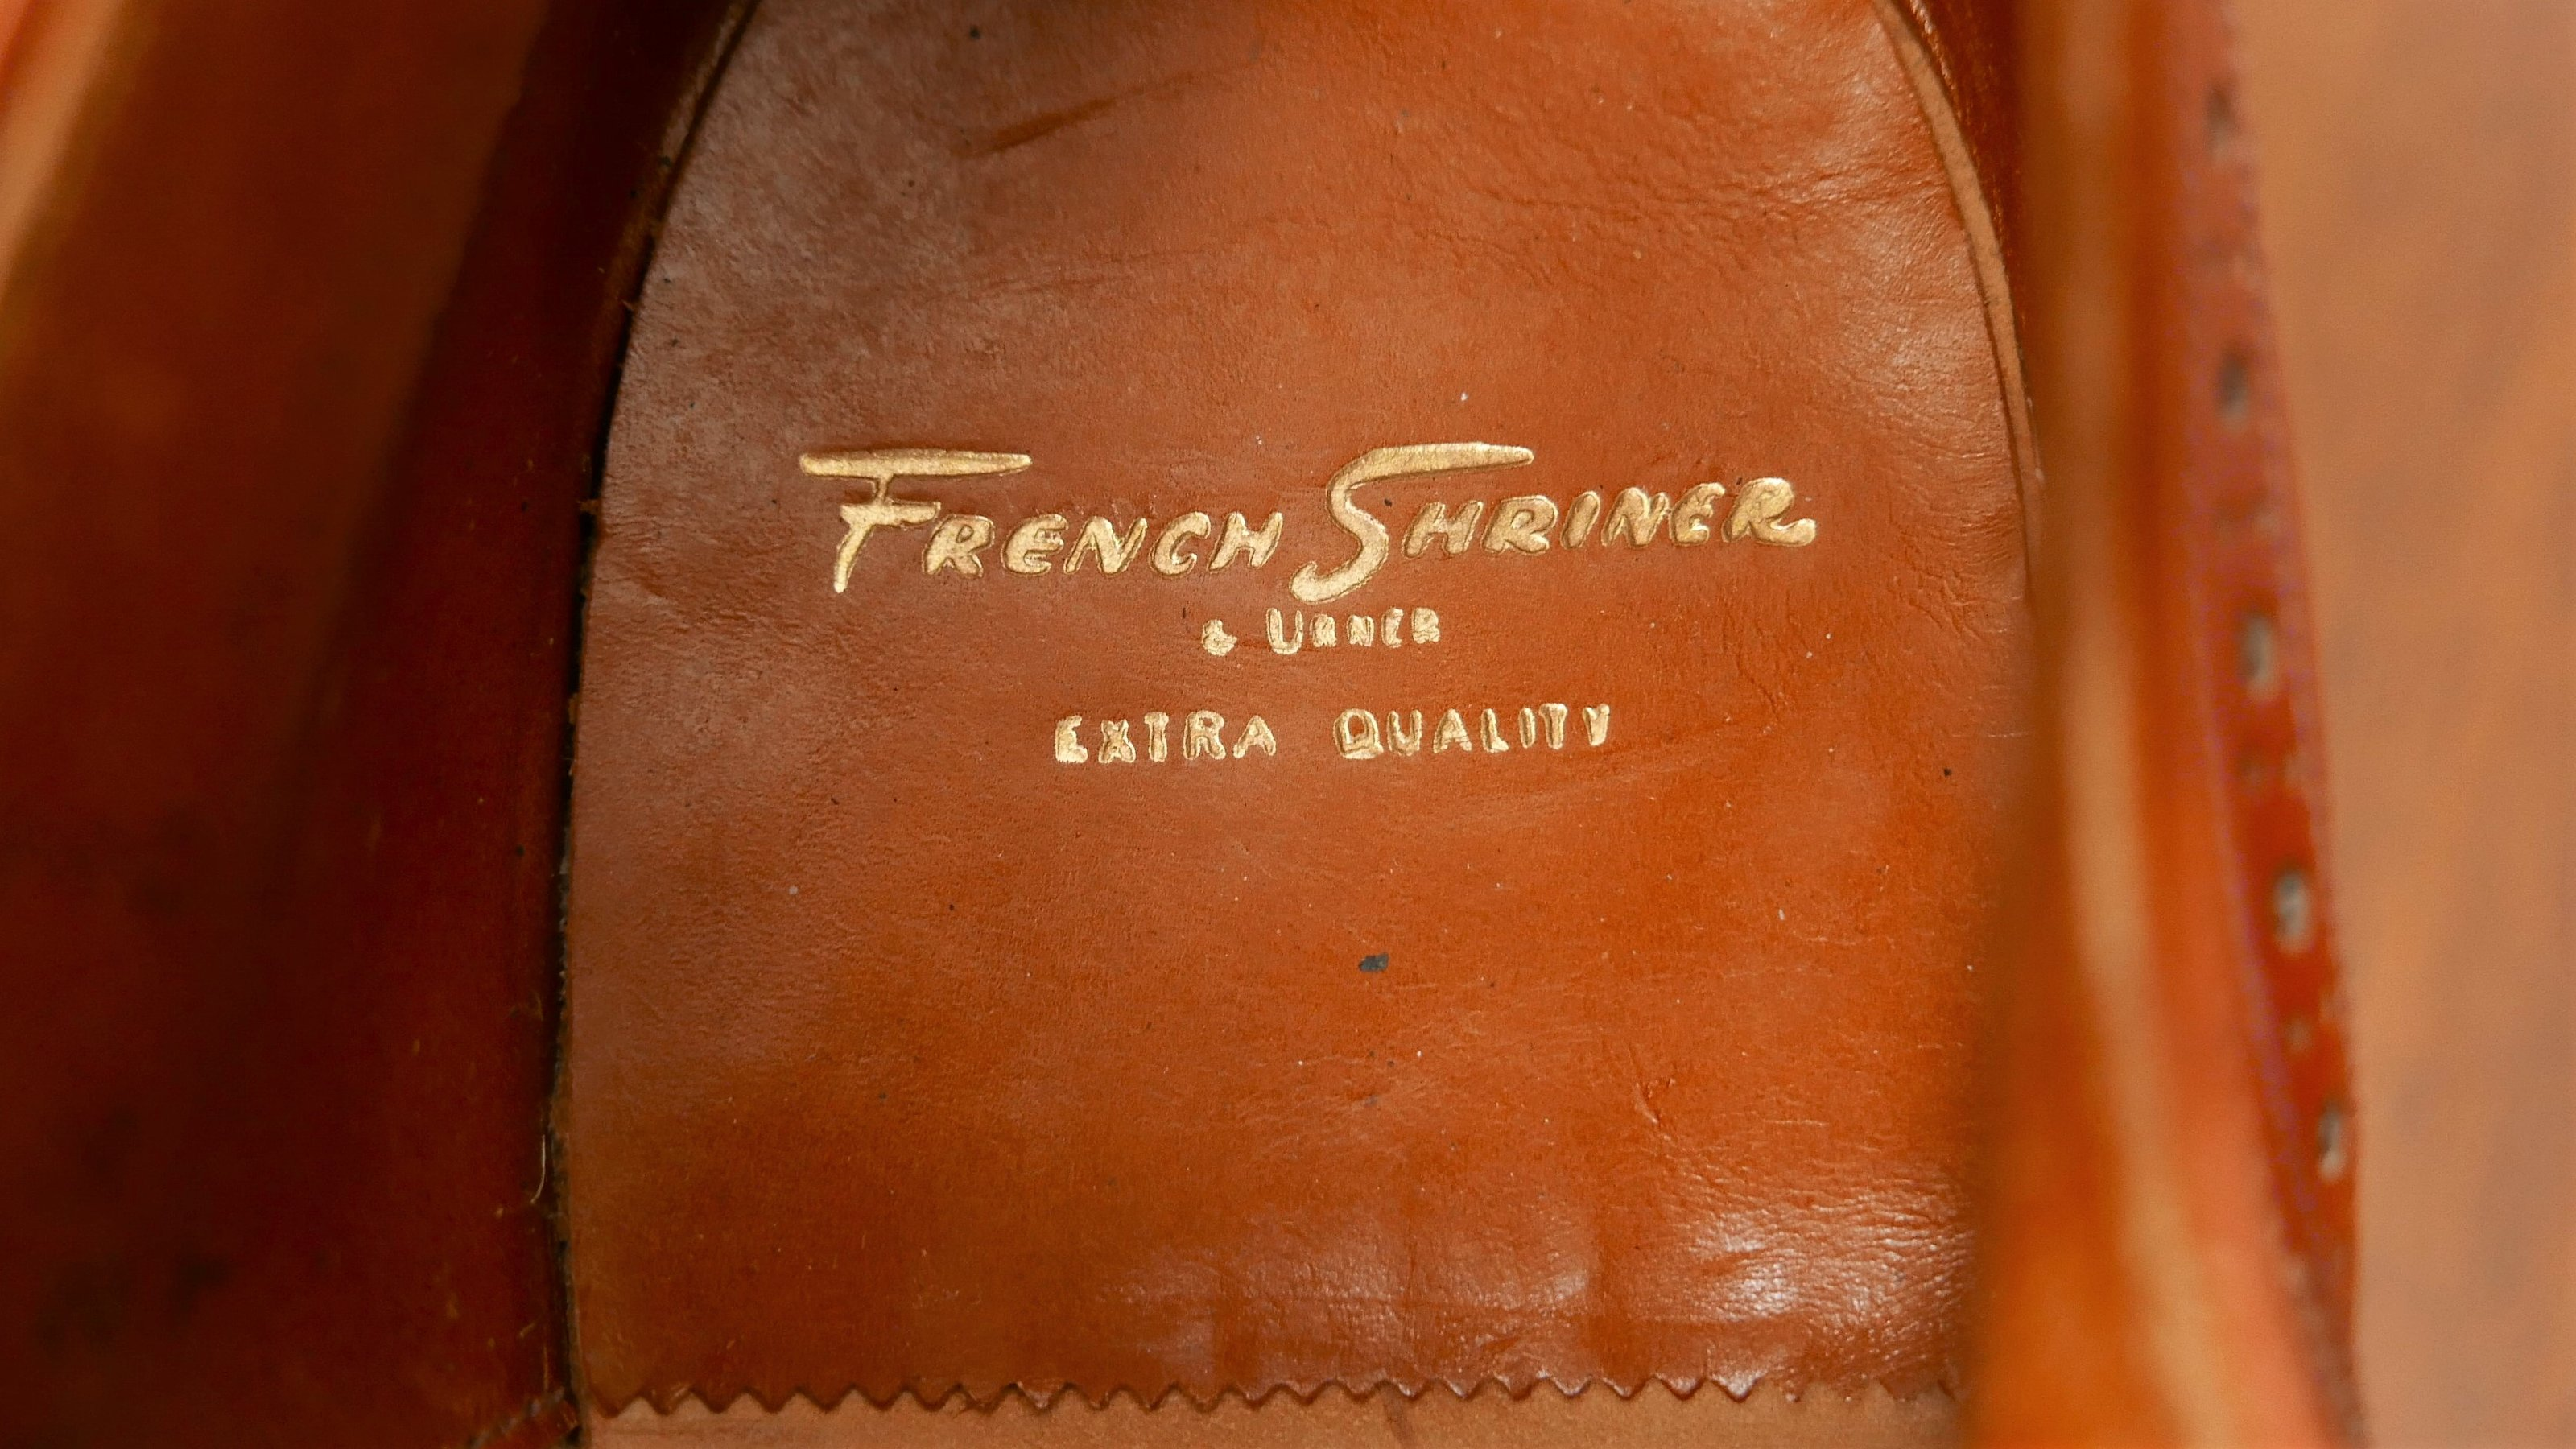 French Shriner